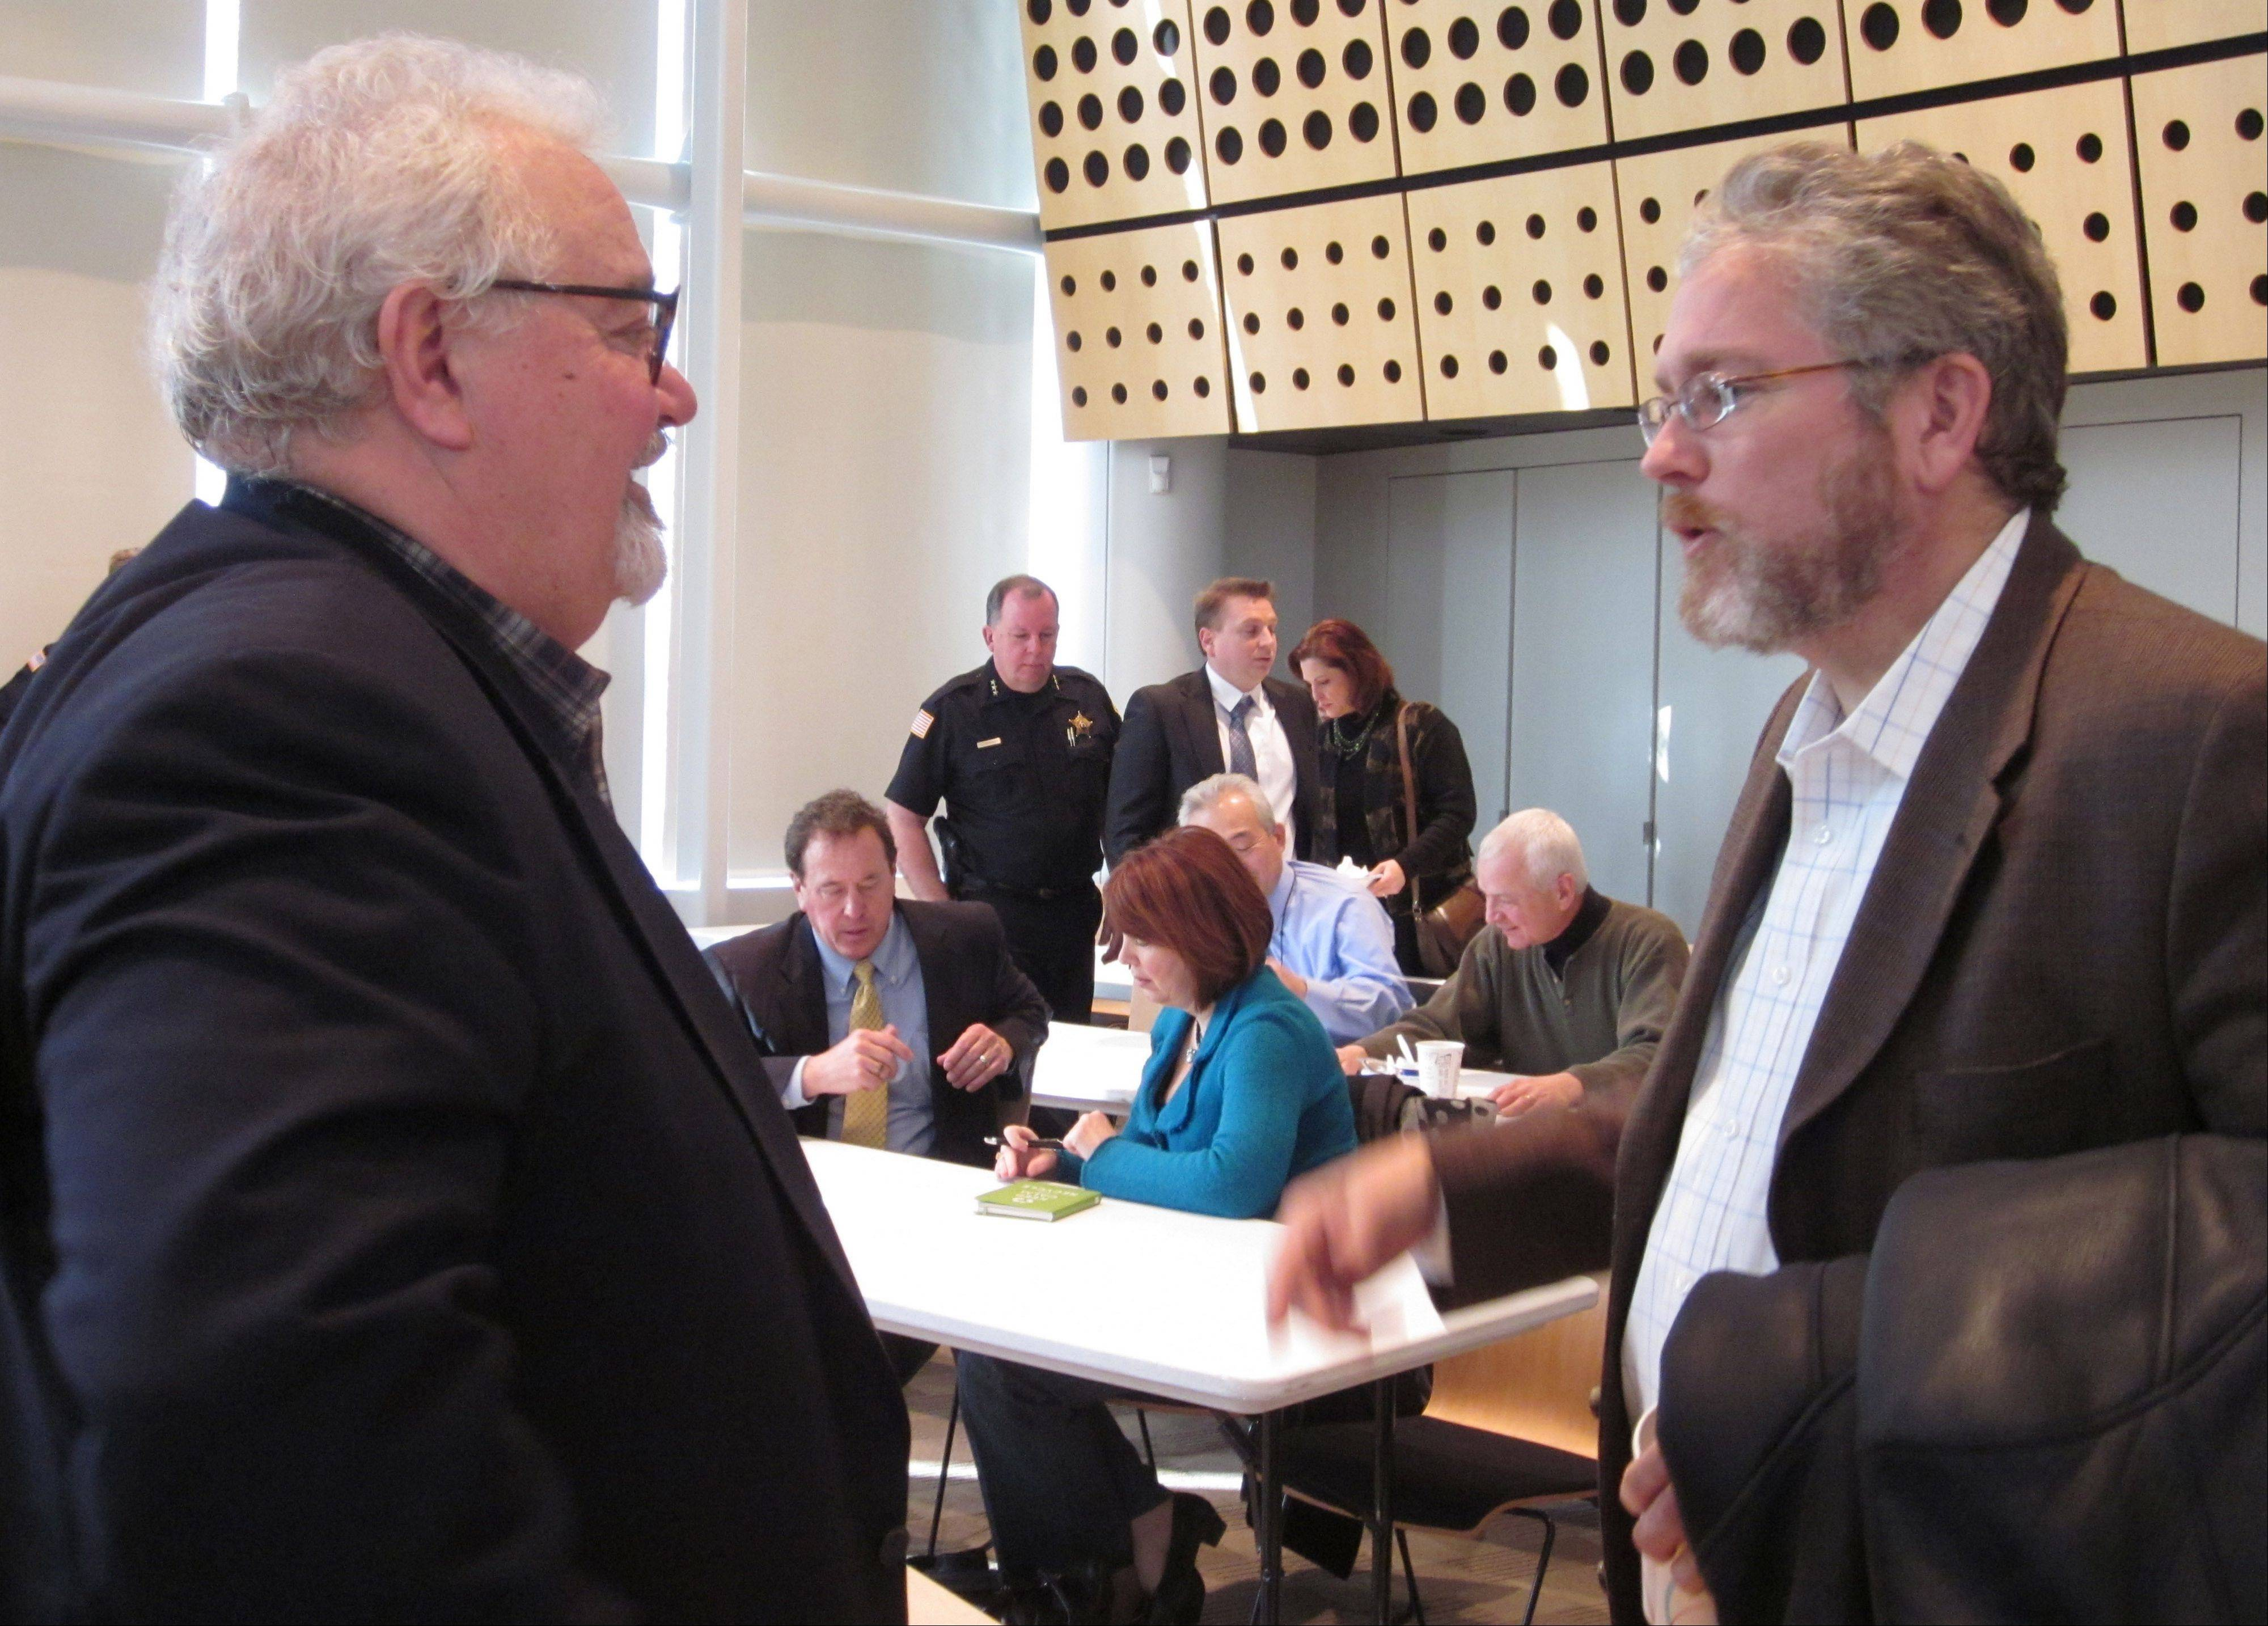 Vernon Hills Mayor Roger Byrne, left, talks Thursday with Stephen Park, senior vice president of the Alter Group and a Gurnee village trustee, after his state of the village presentation. Vernon Hills has seen an increase in sales tax and is on sound financial footing, Byrne said.